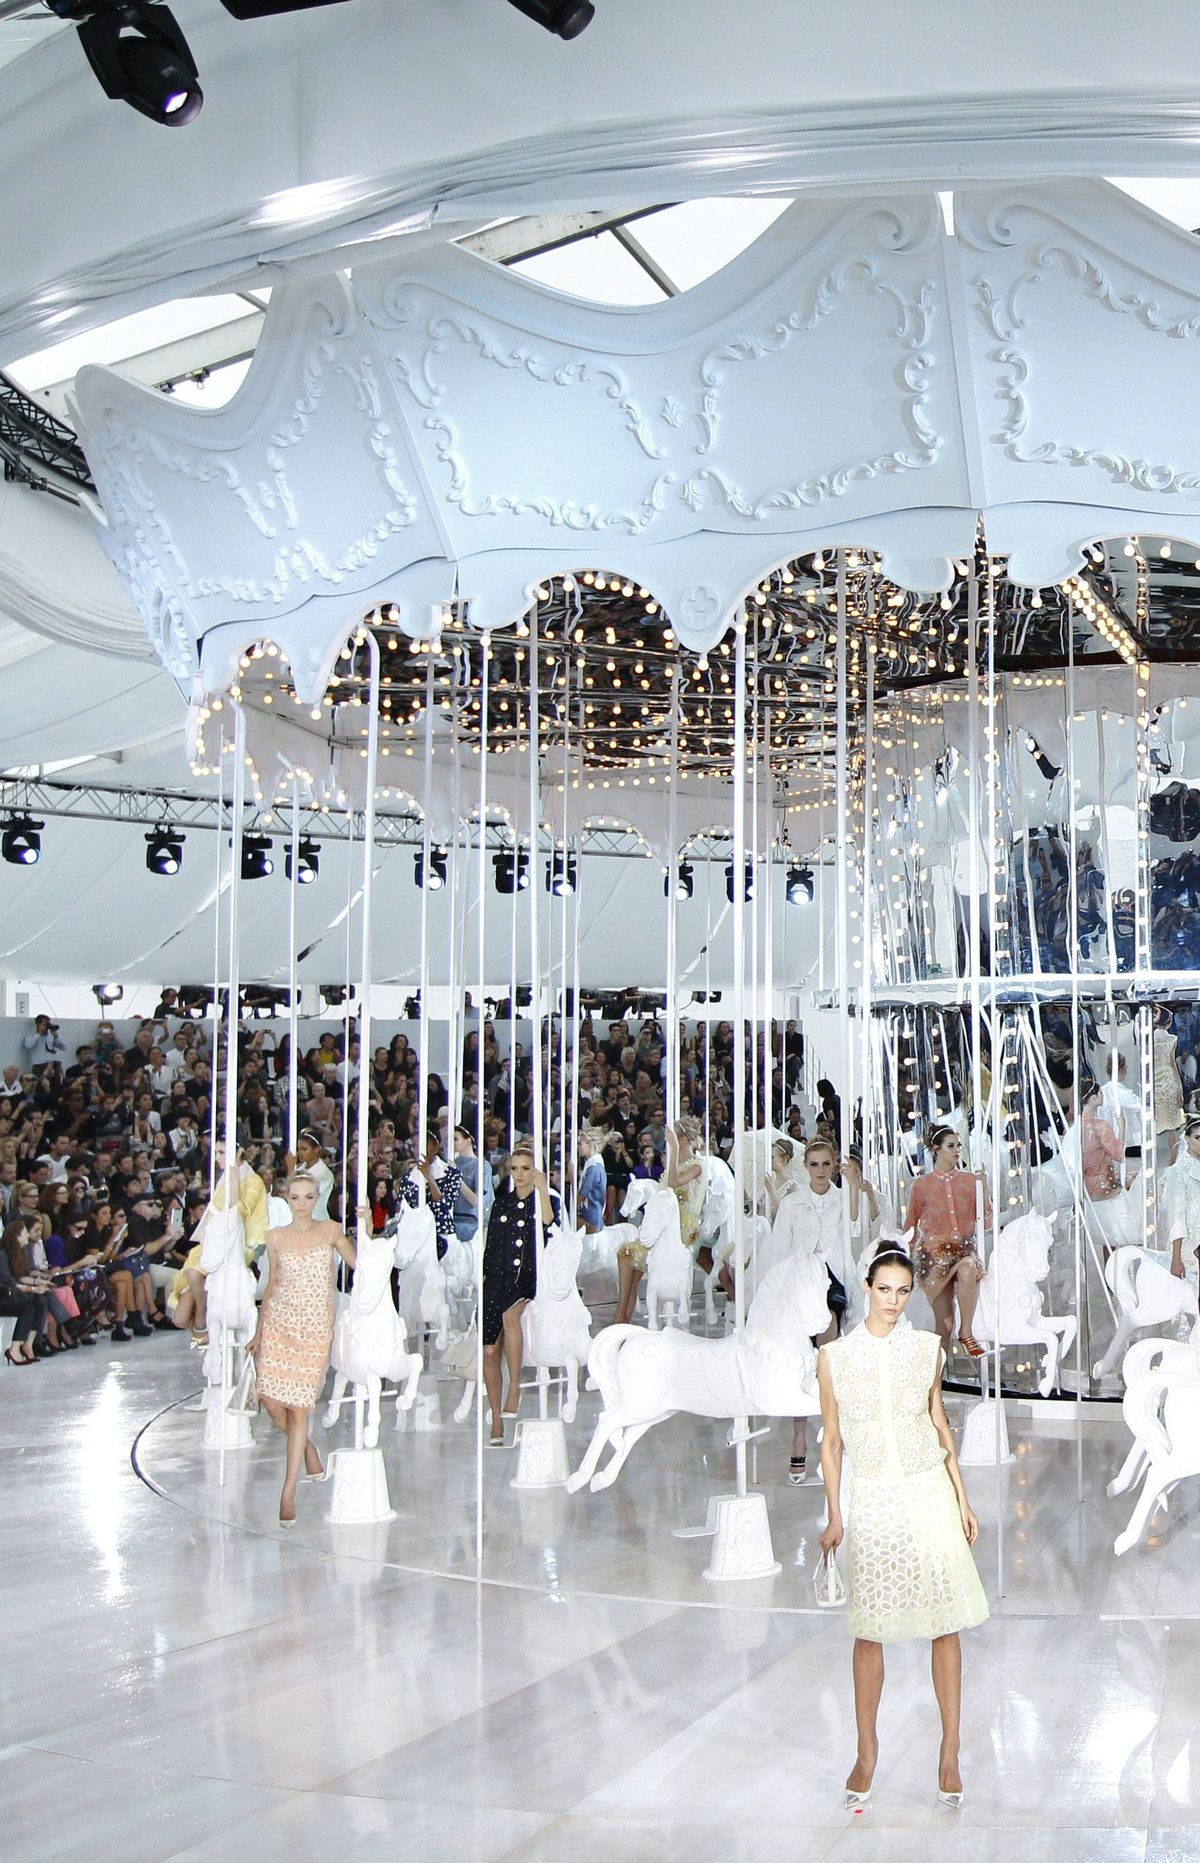 Louis Vuitton Spring/Summer 2012 ready-to-wear collection Louis Vuitton has traditionally held the final morning slot of Paris Fashion Week. Unsurprisingly, the maison stages a mega-production. On this occasion, a cylindrical curtain dropped to reveal an all-white, fully functioning carousel. One model to a horse, they gradually stepped off and promenaded around the circular runway.